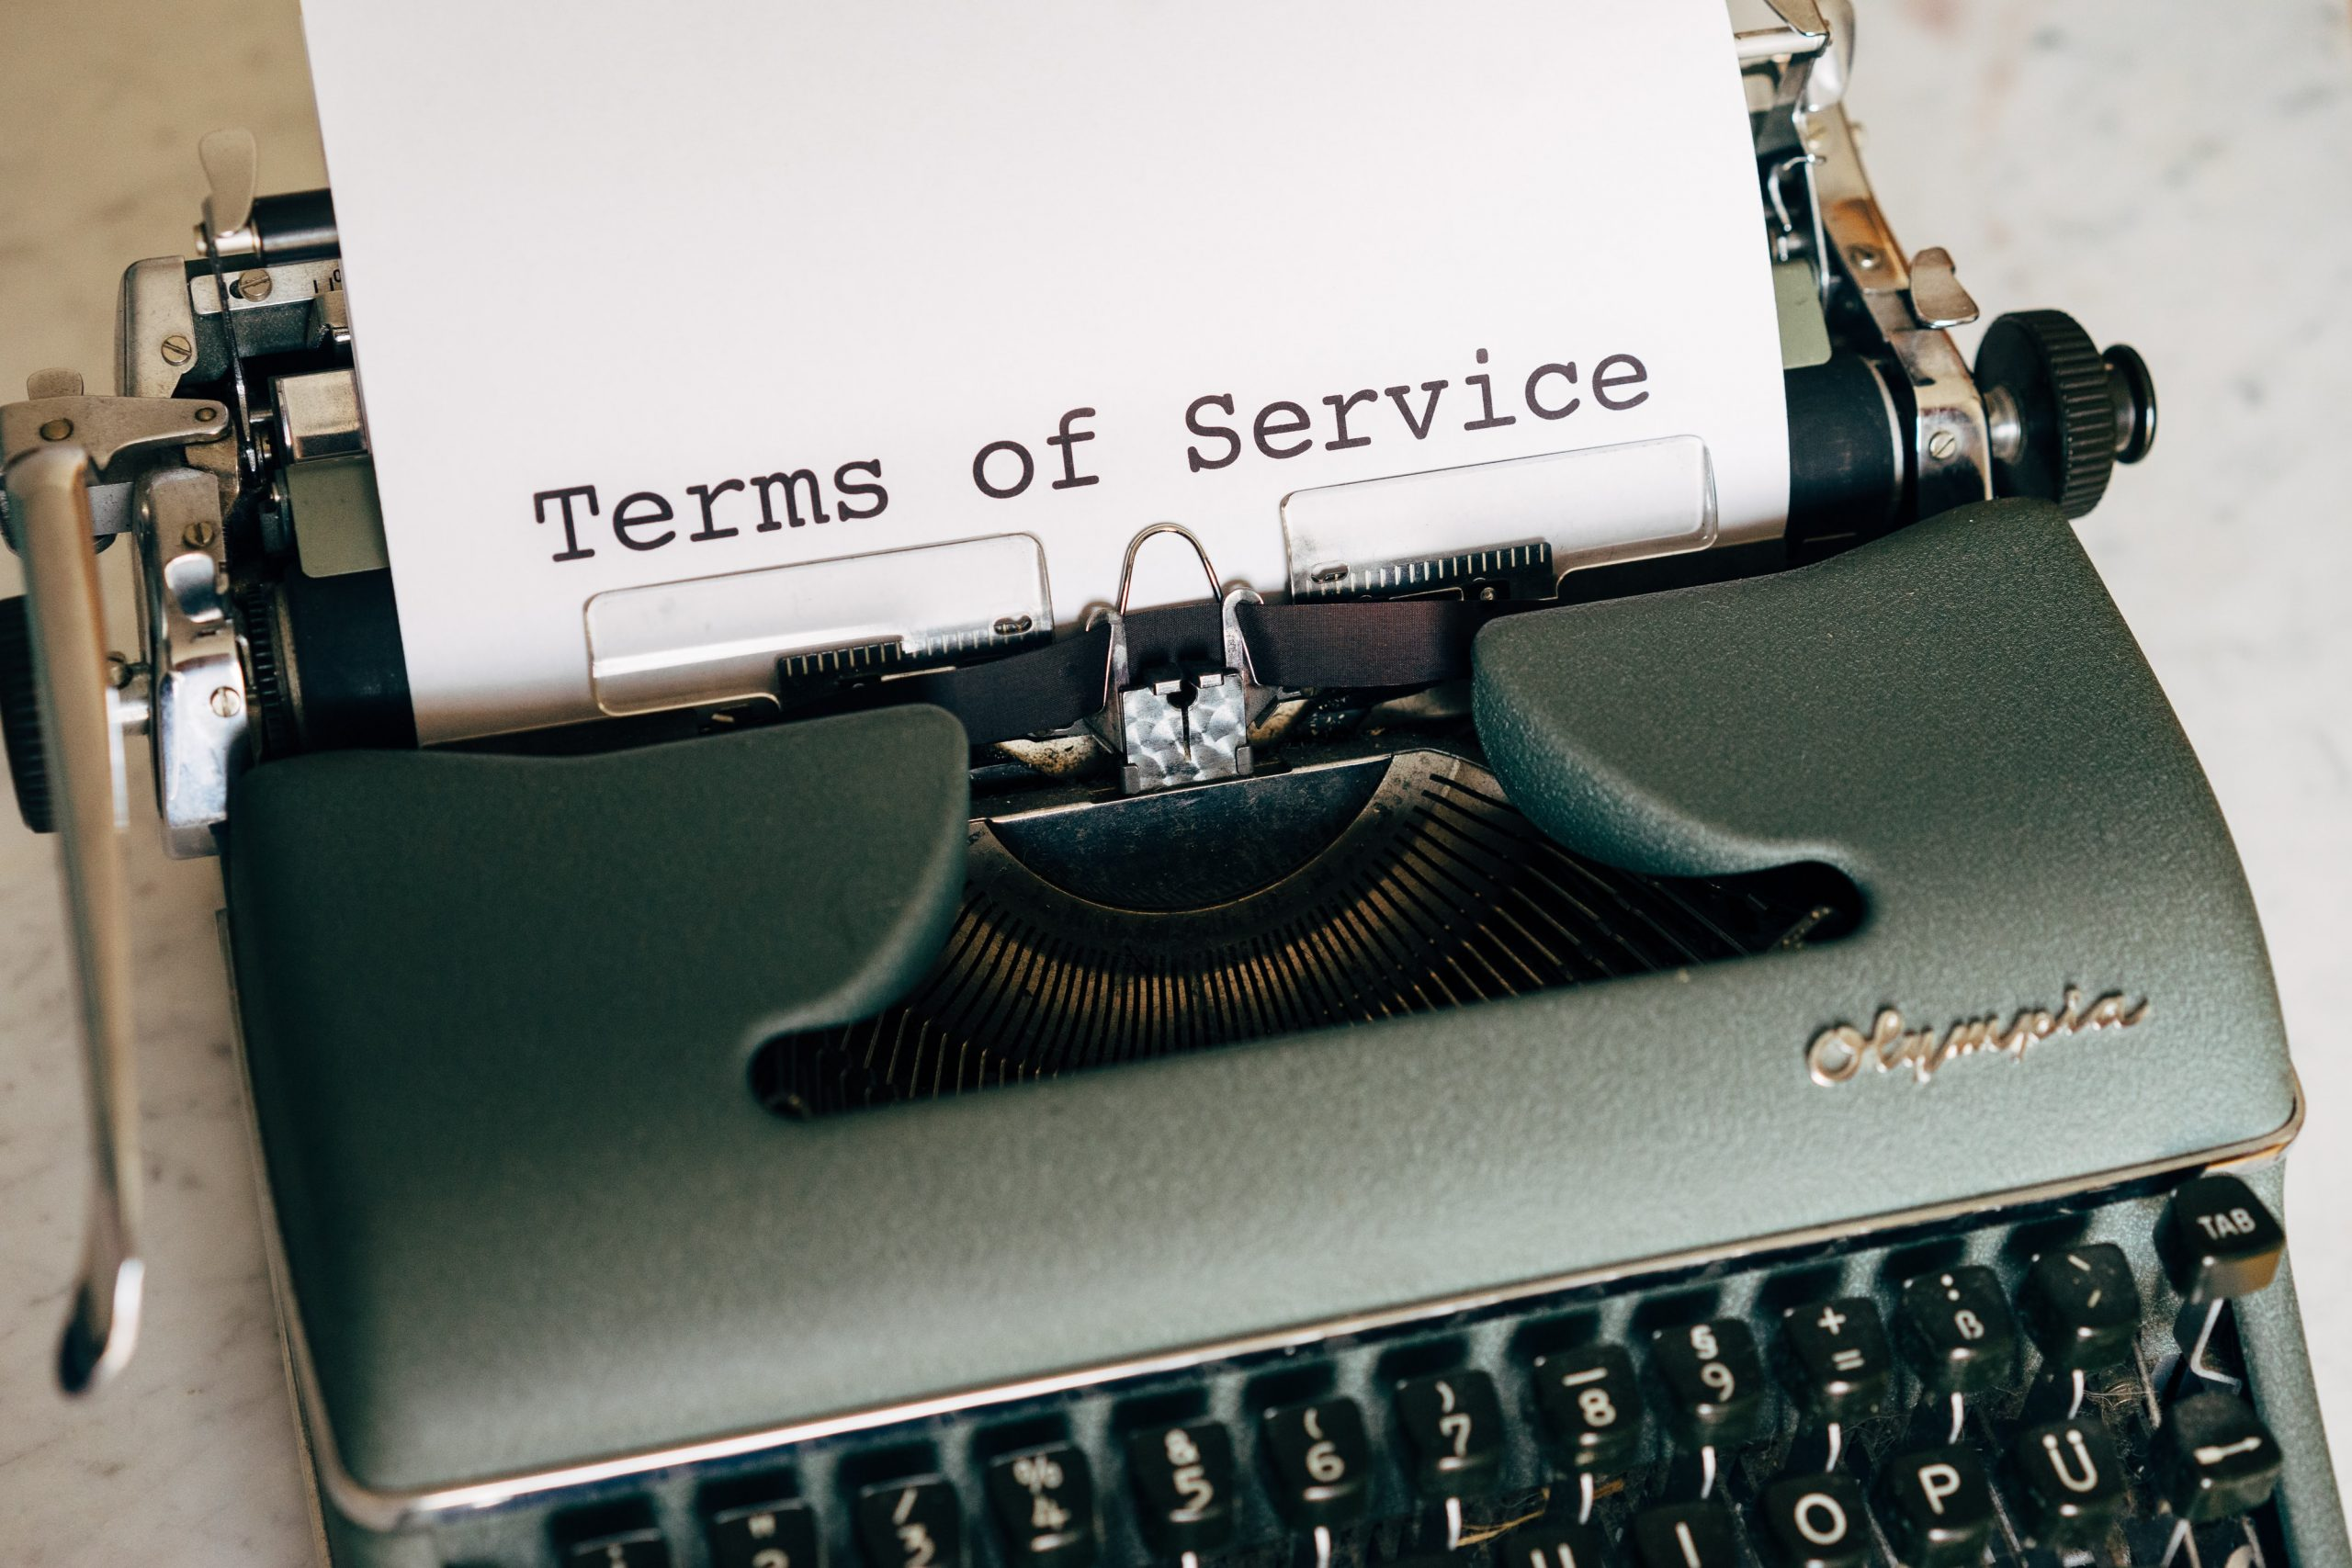 Typewriter with a page with term of service written on it